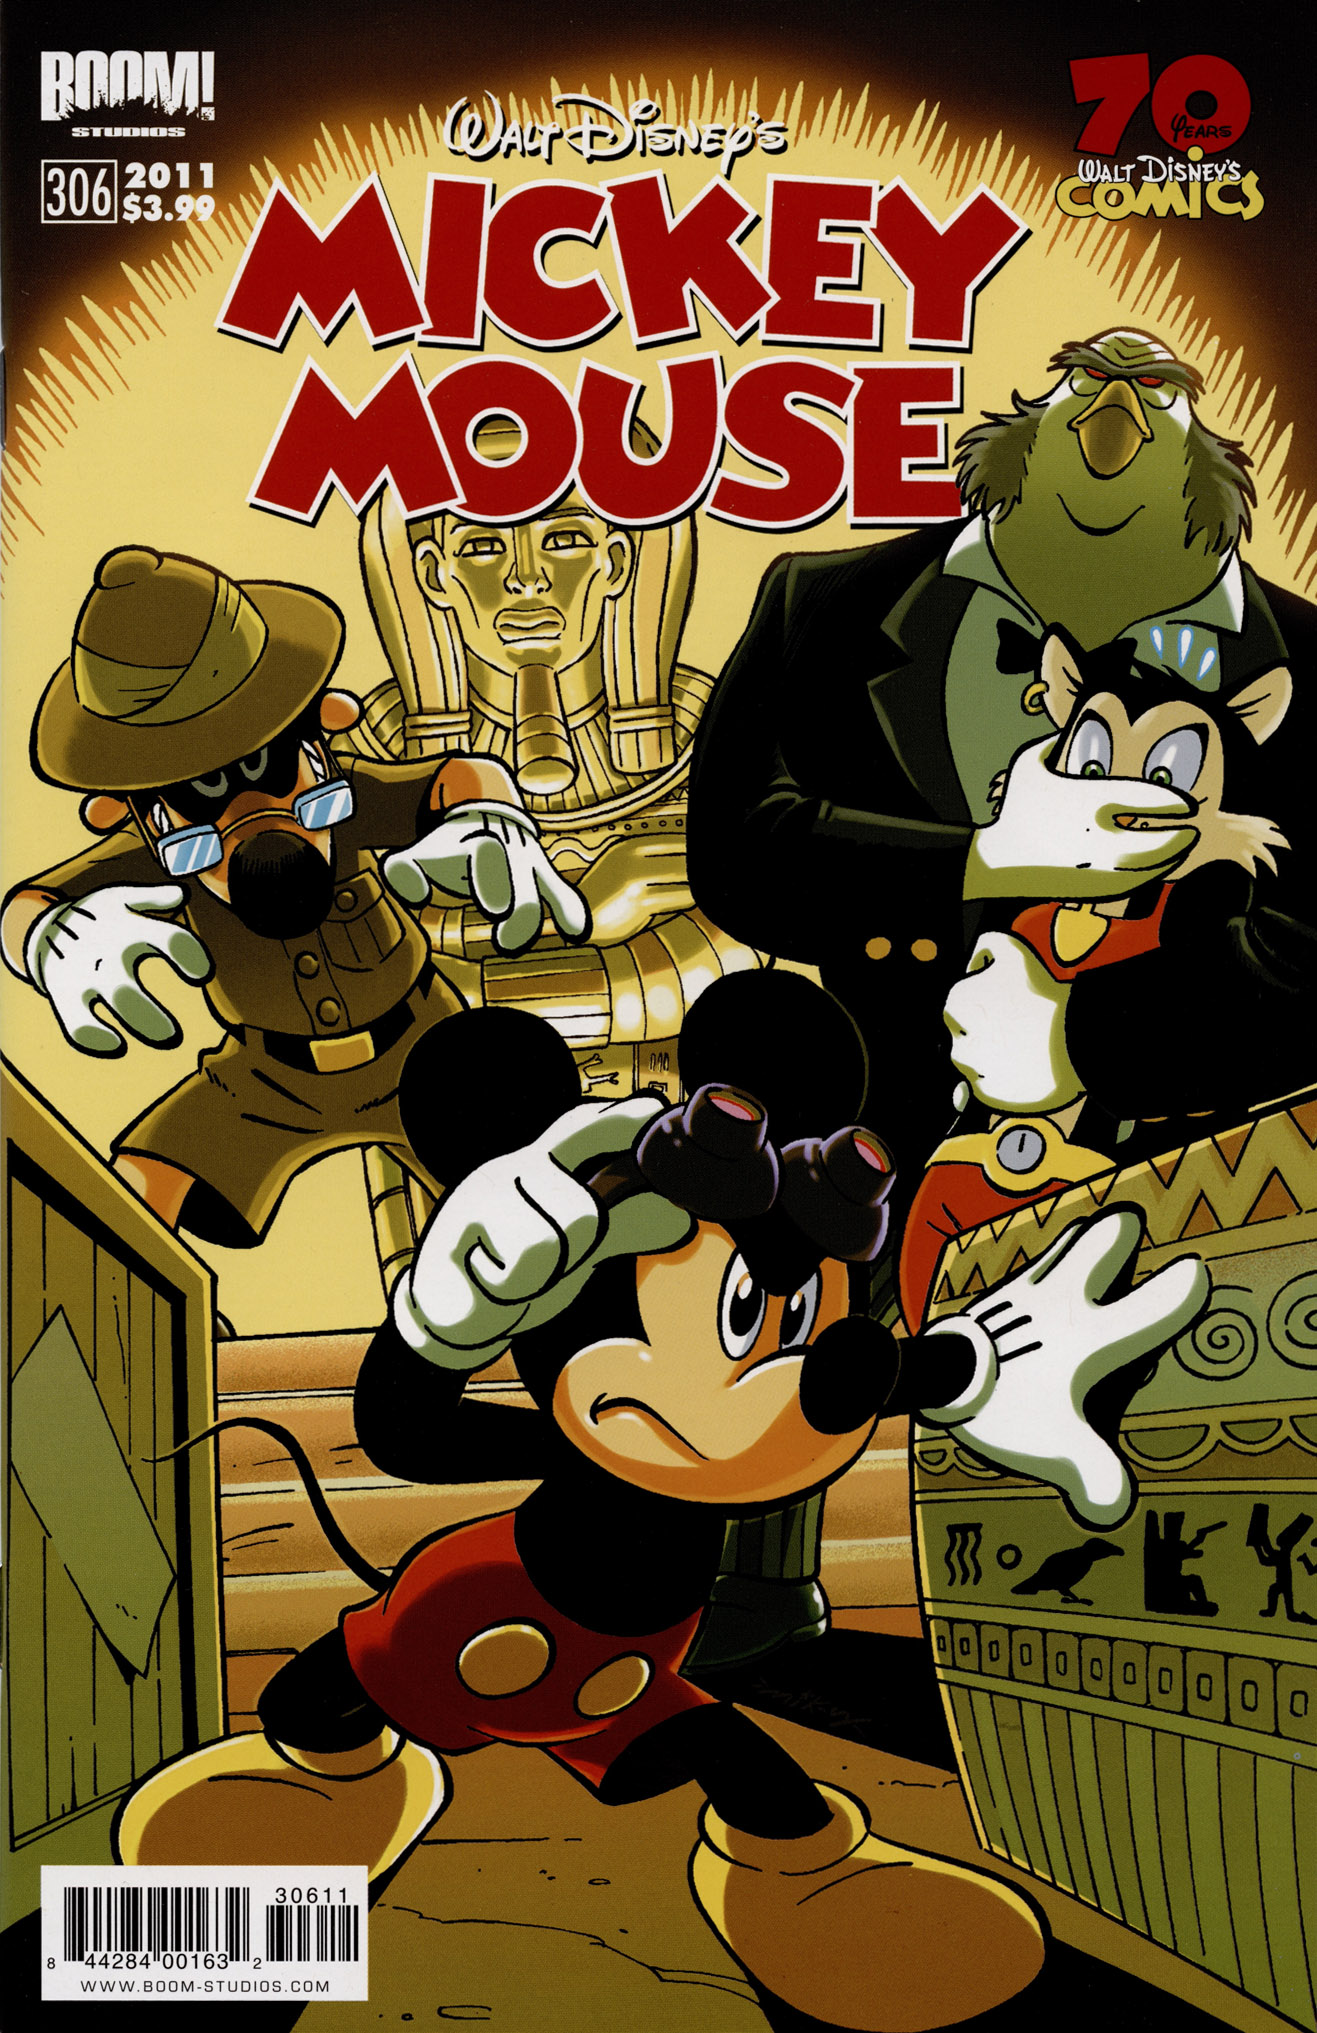 Read online Mickey Mouse (2011) comic -  Issue #306 - 1